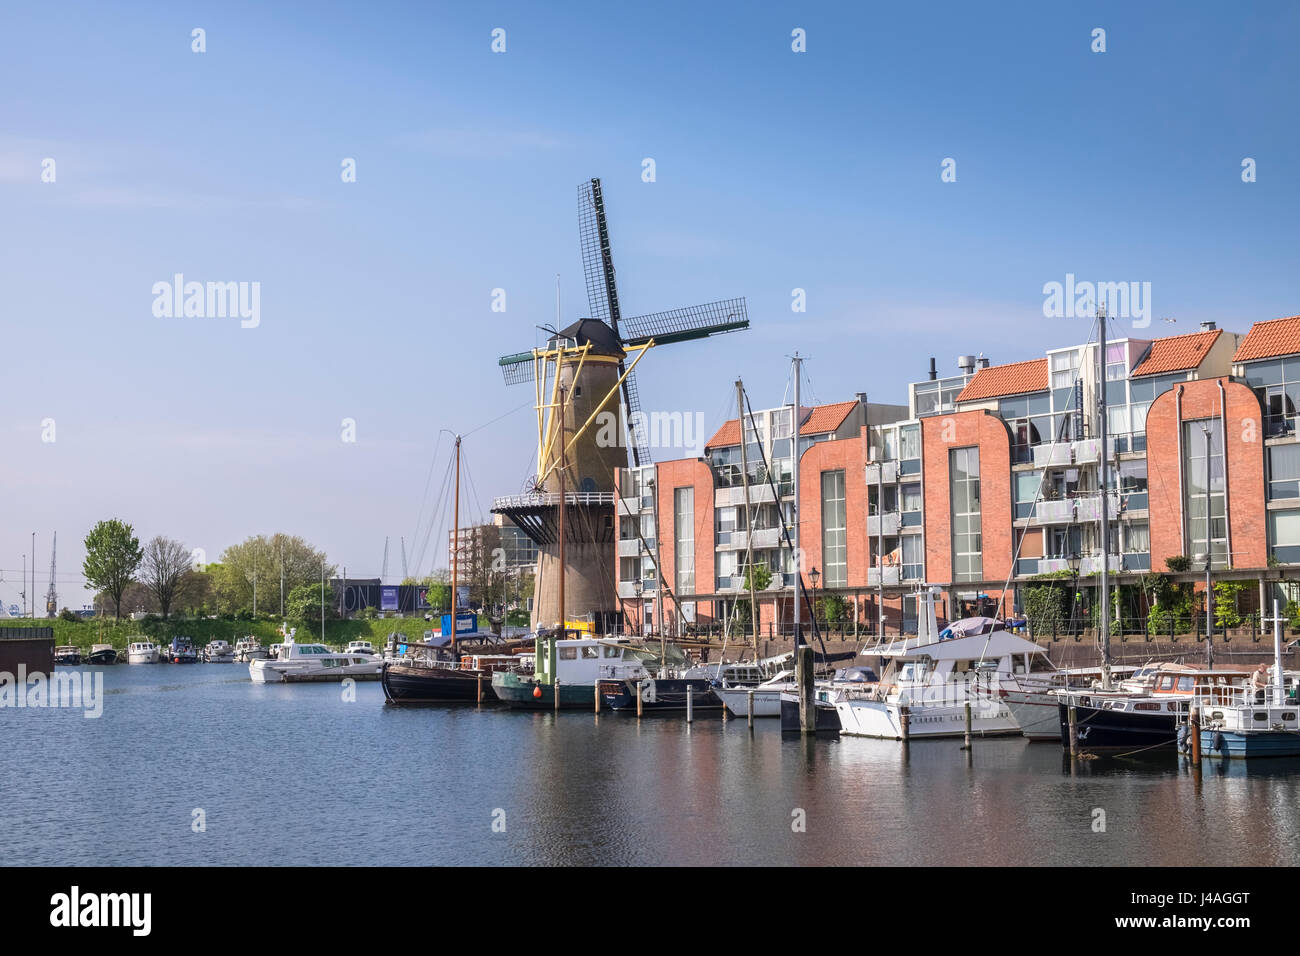 Windmill and boats in the historic area of Delfshaven, Rotterdam, The Netherlands. Stock Photo